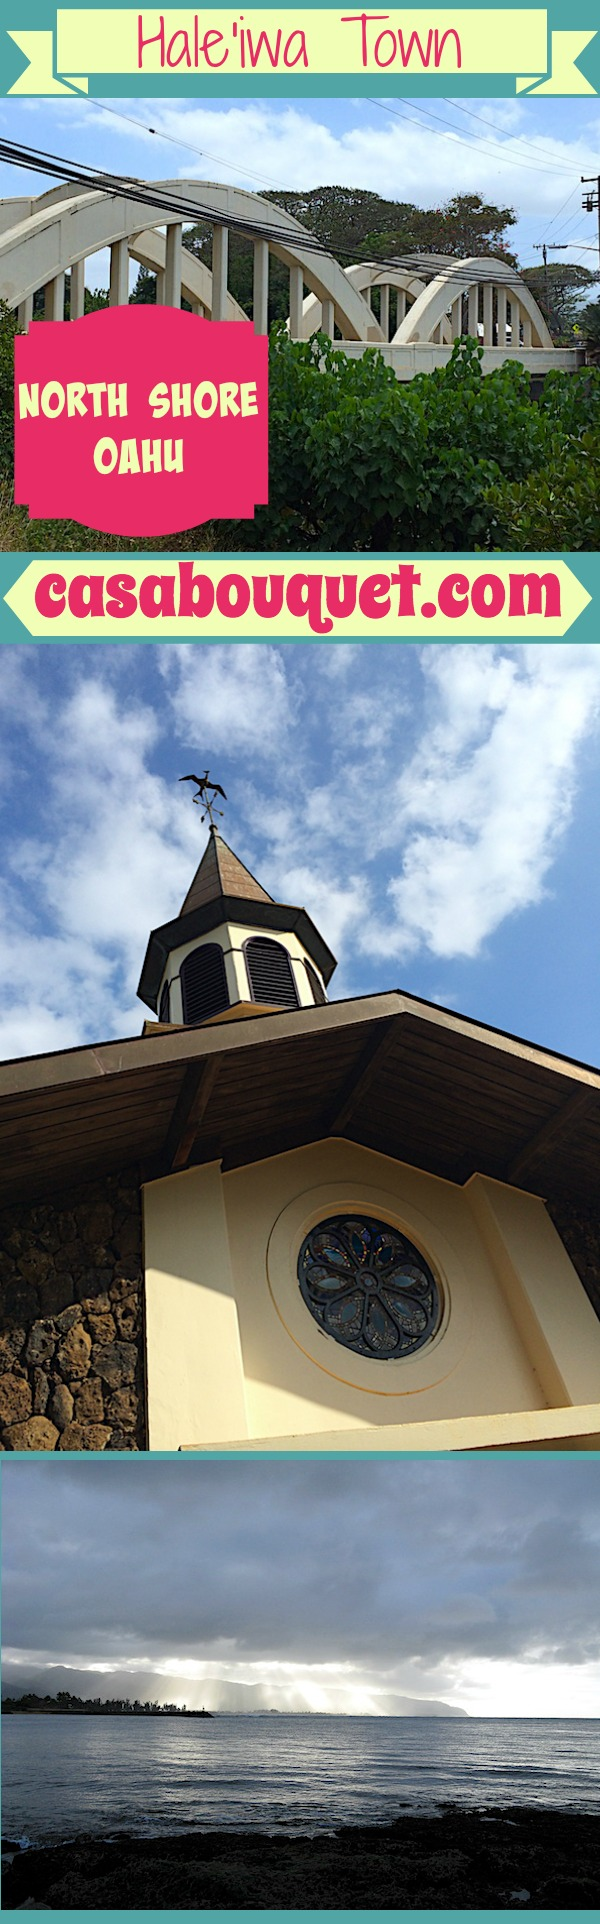 Haleiwa town on the North Shore has interesting things to do on Oahu. Restaurants, shopping, surfing and other sports, and Liliuo'kalani Church.